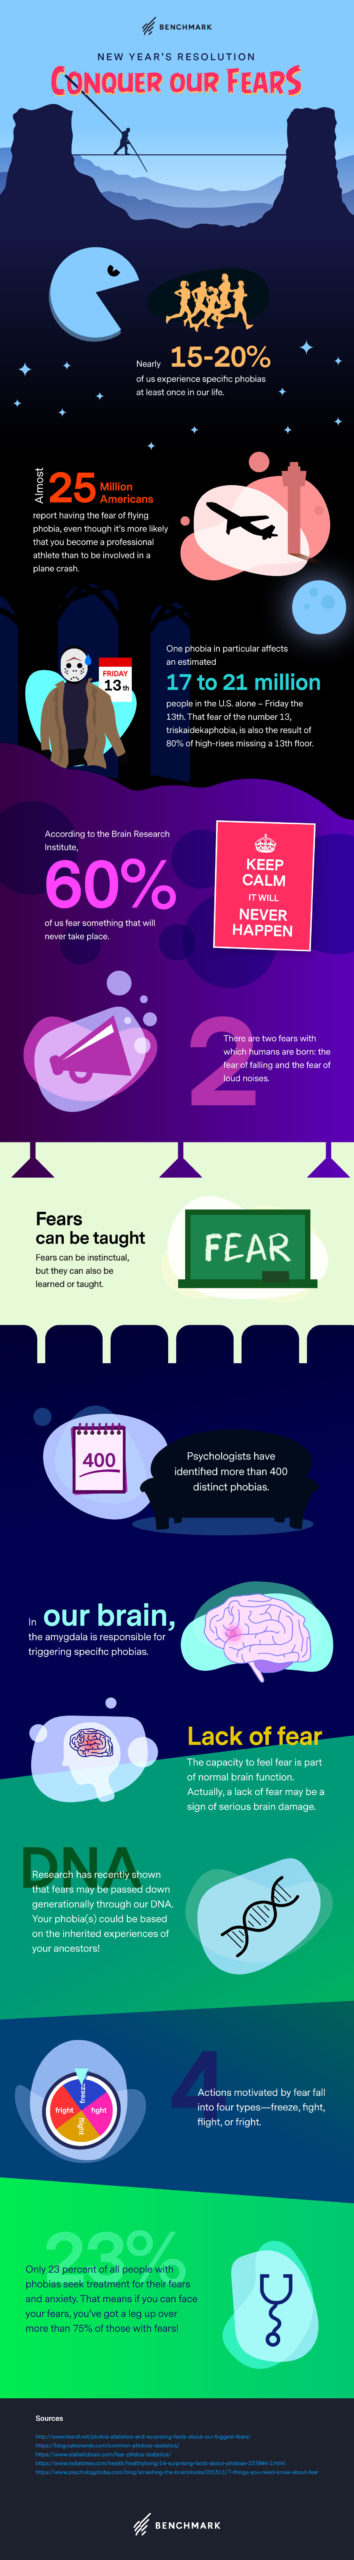 Infographic: Conquering Our Fears